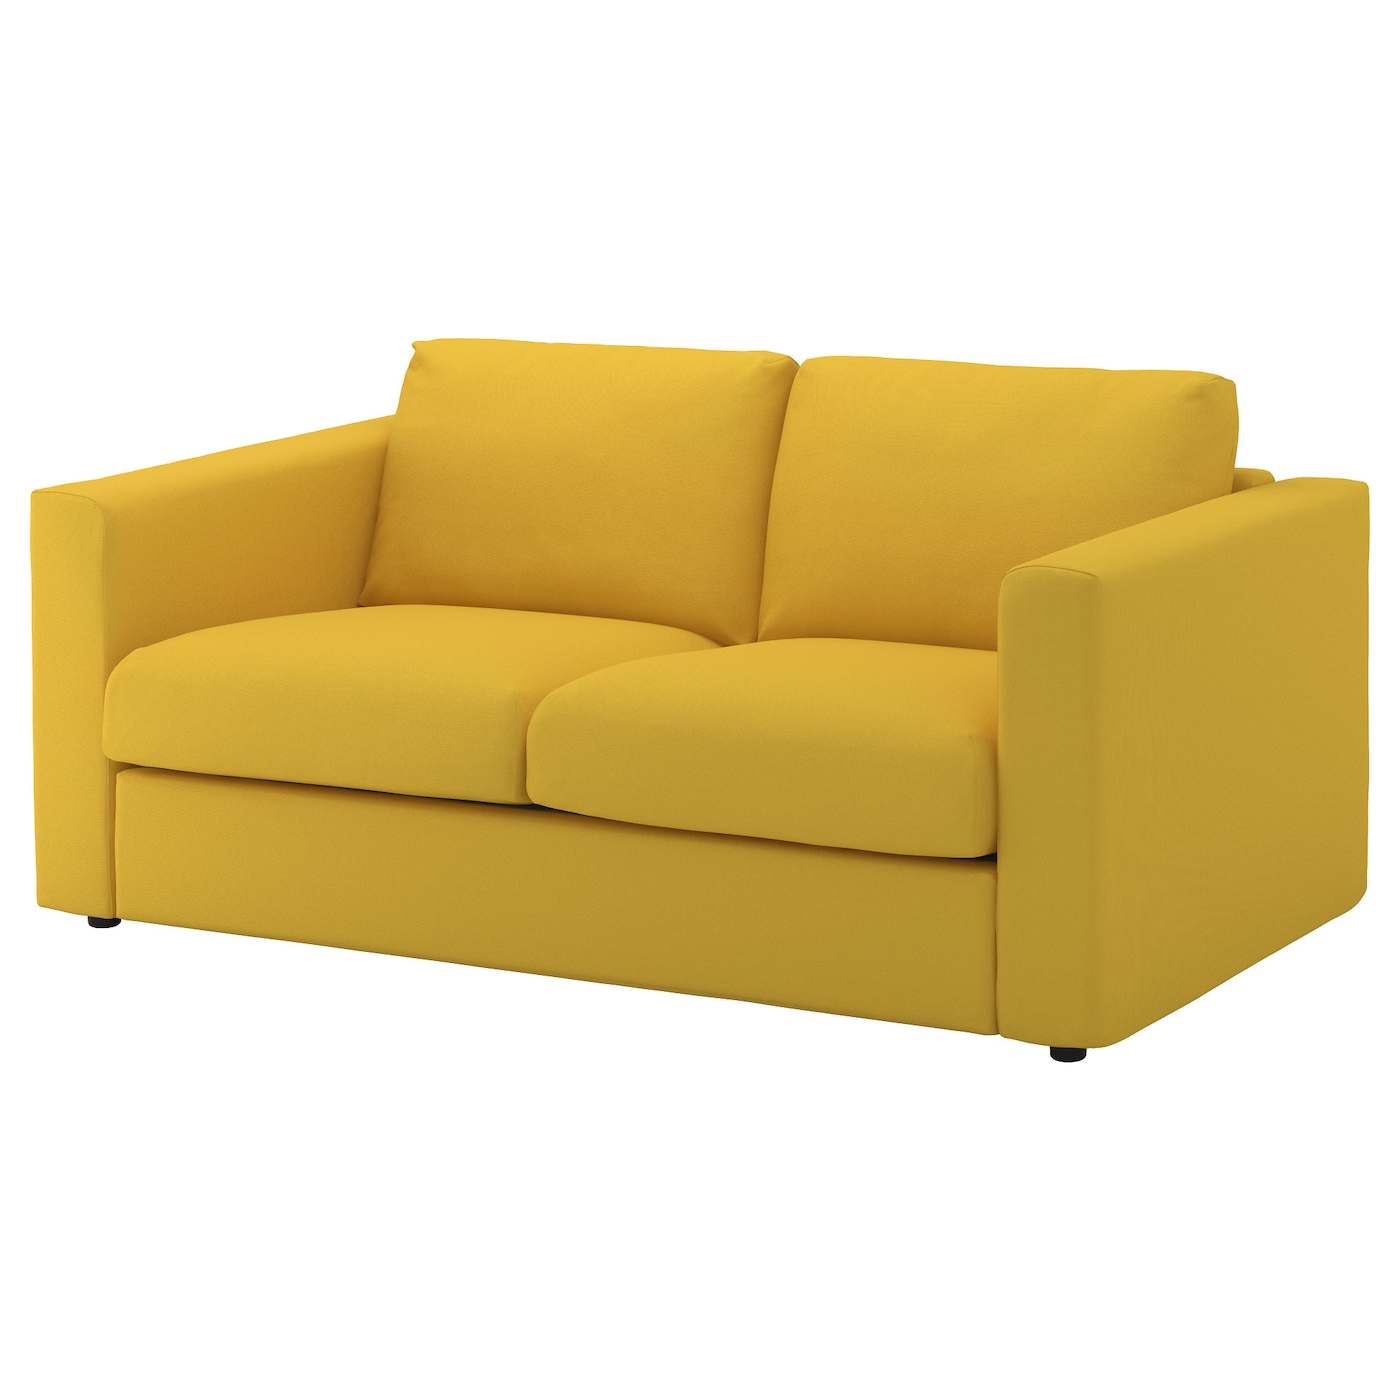 VIMLE Cover for 2 seat sofa Gräsbo golden yellow IKEA